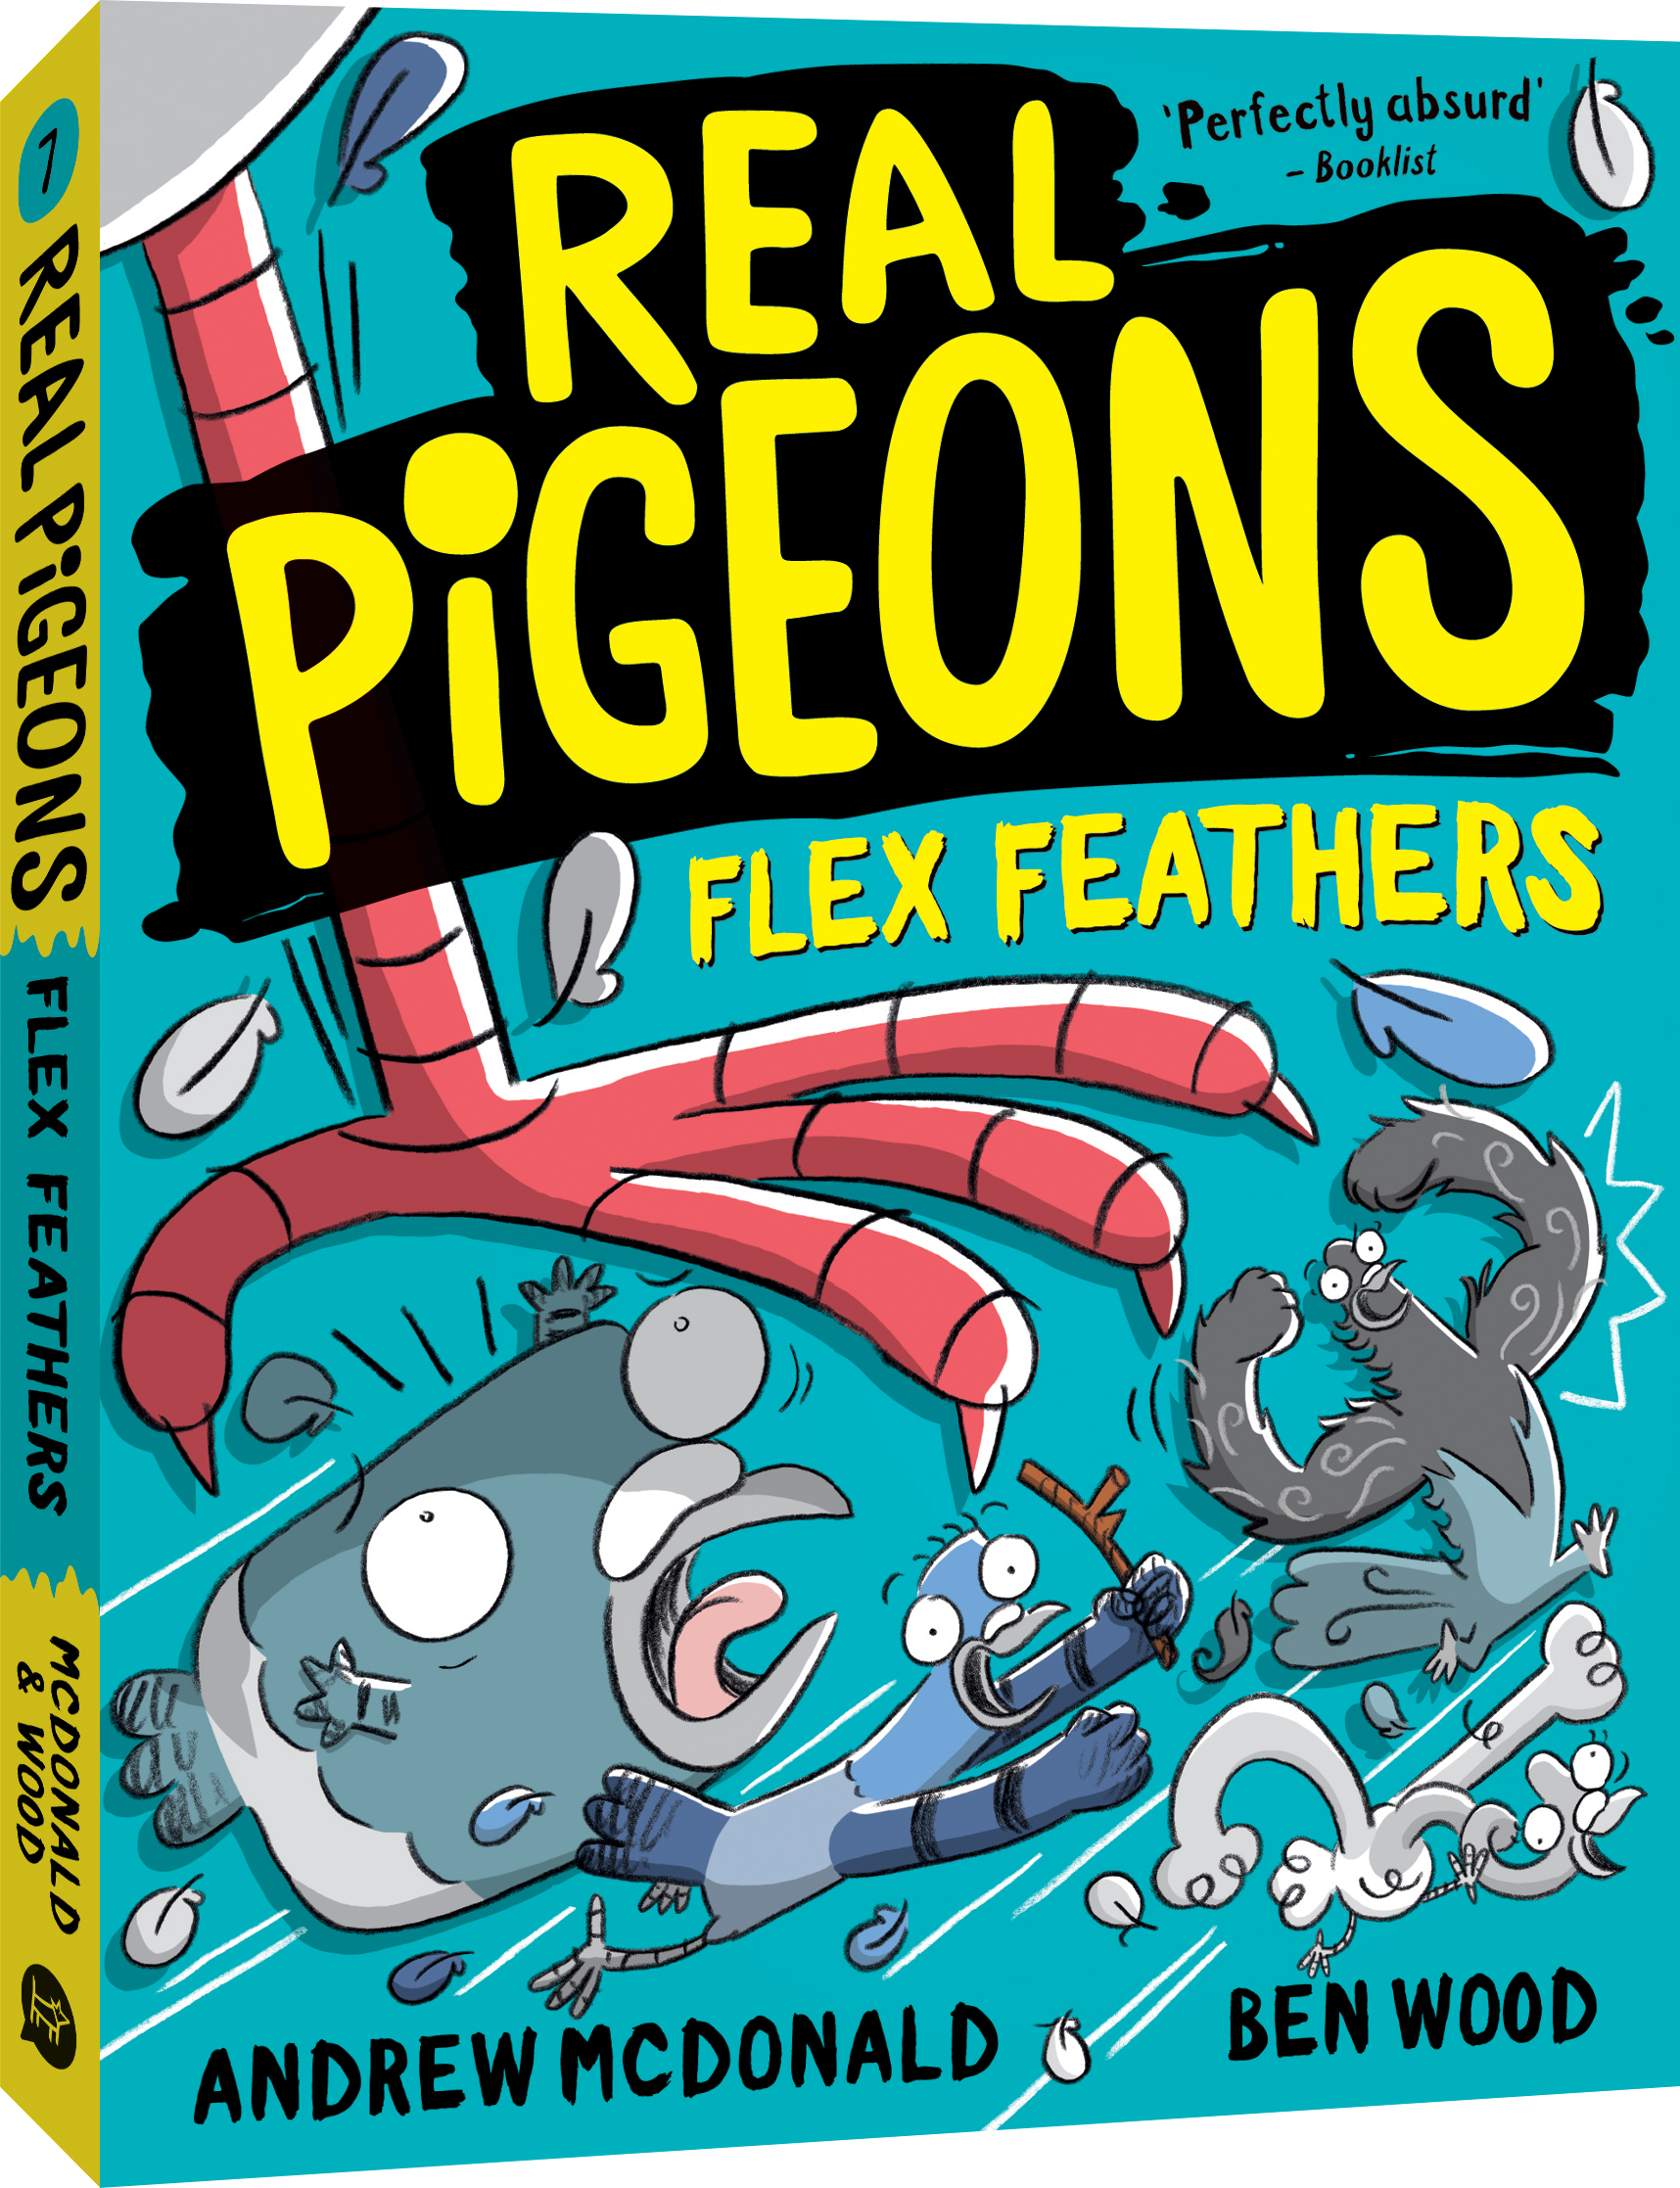 Real Pigeons Flex Feathers cover